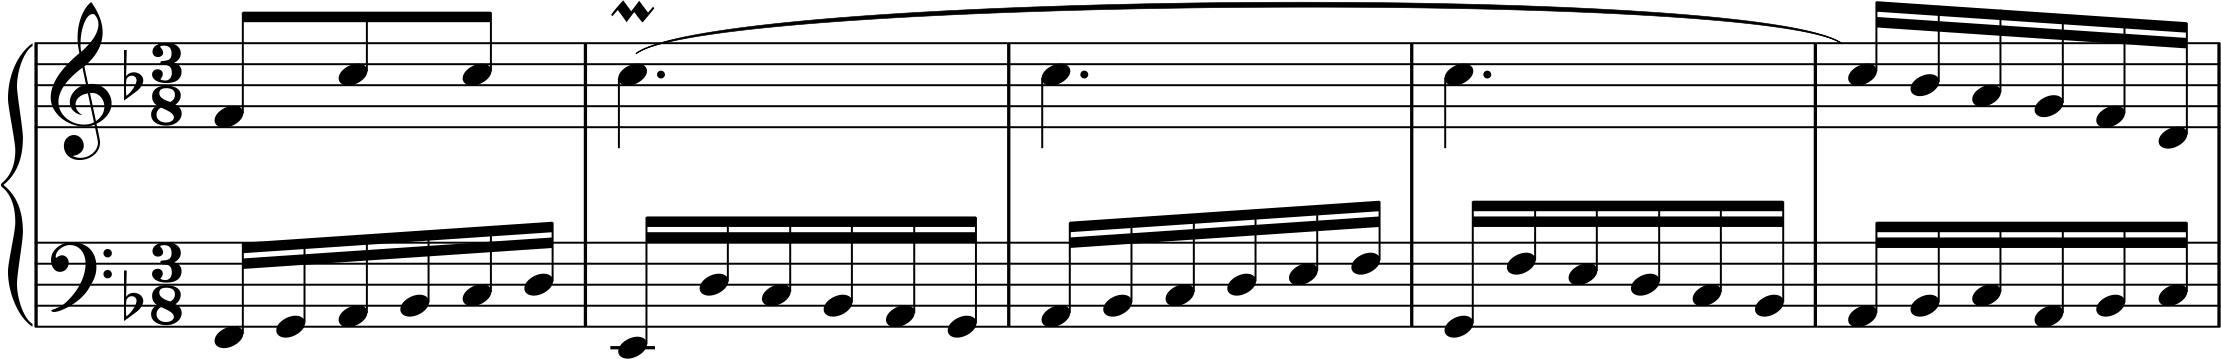 Ex. 1, Bach invention in d minor